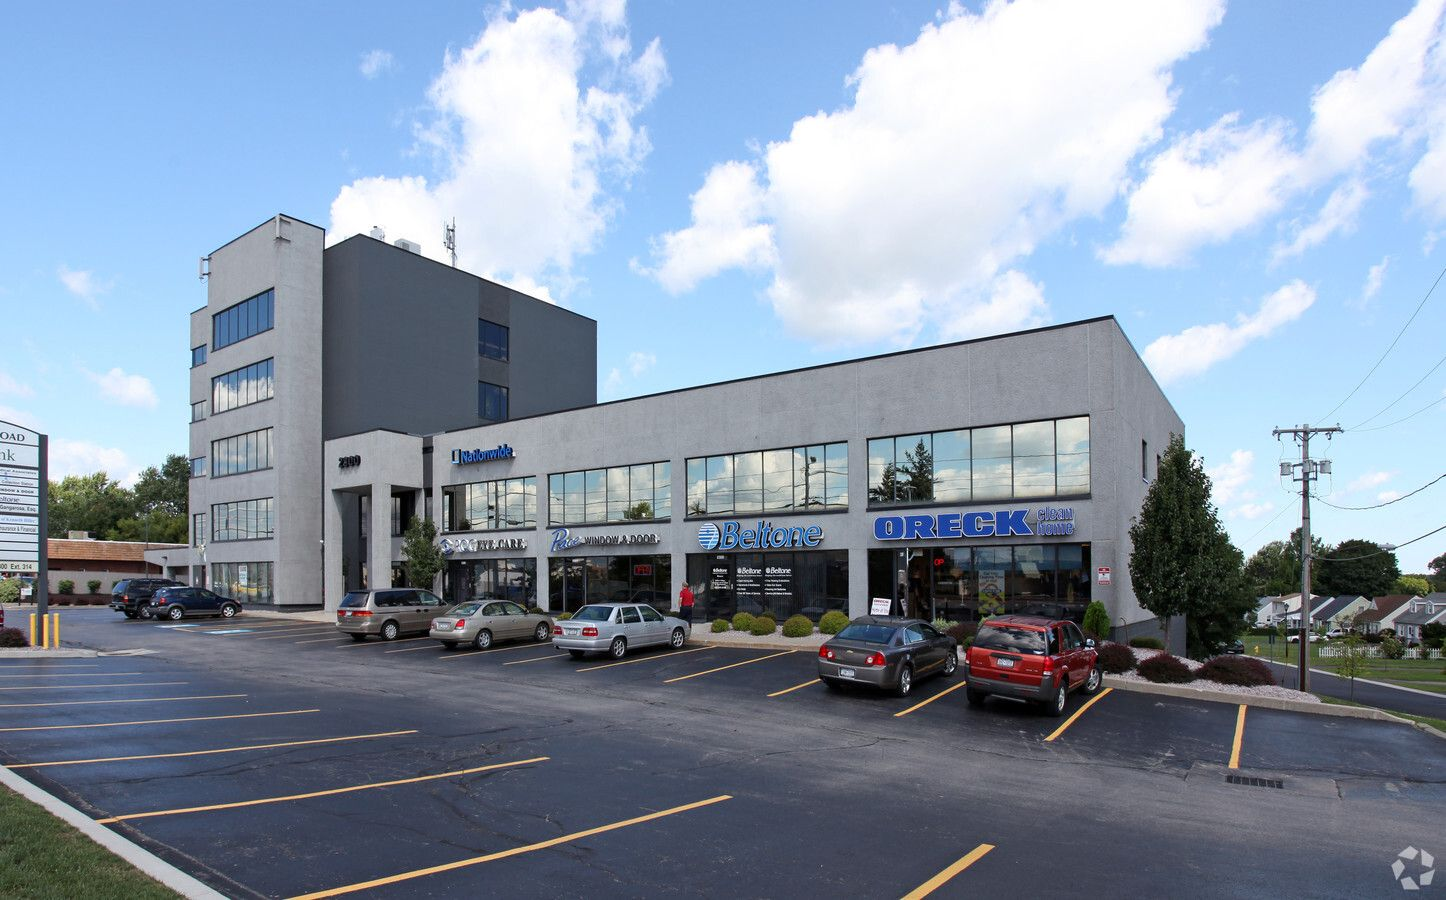 2250-2300 W Ridge Rd, Greece, New York 14626, ,Office,For Lease,W Ridge Rd,1136